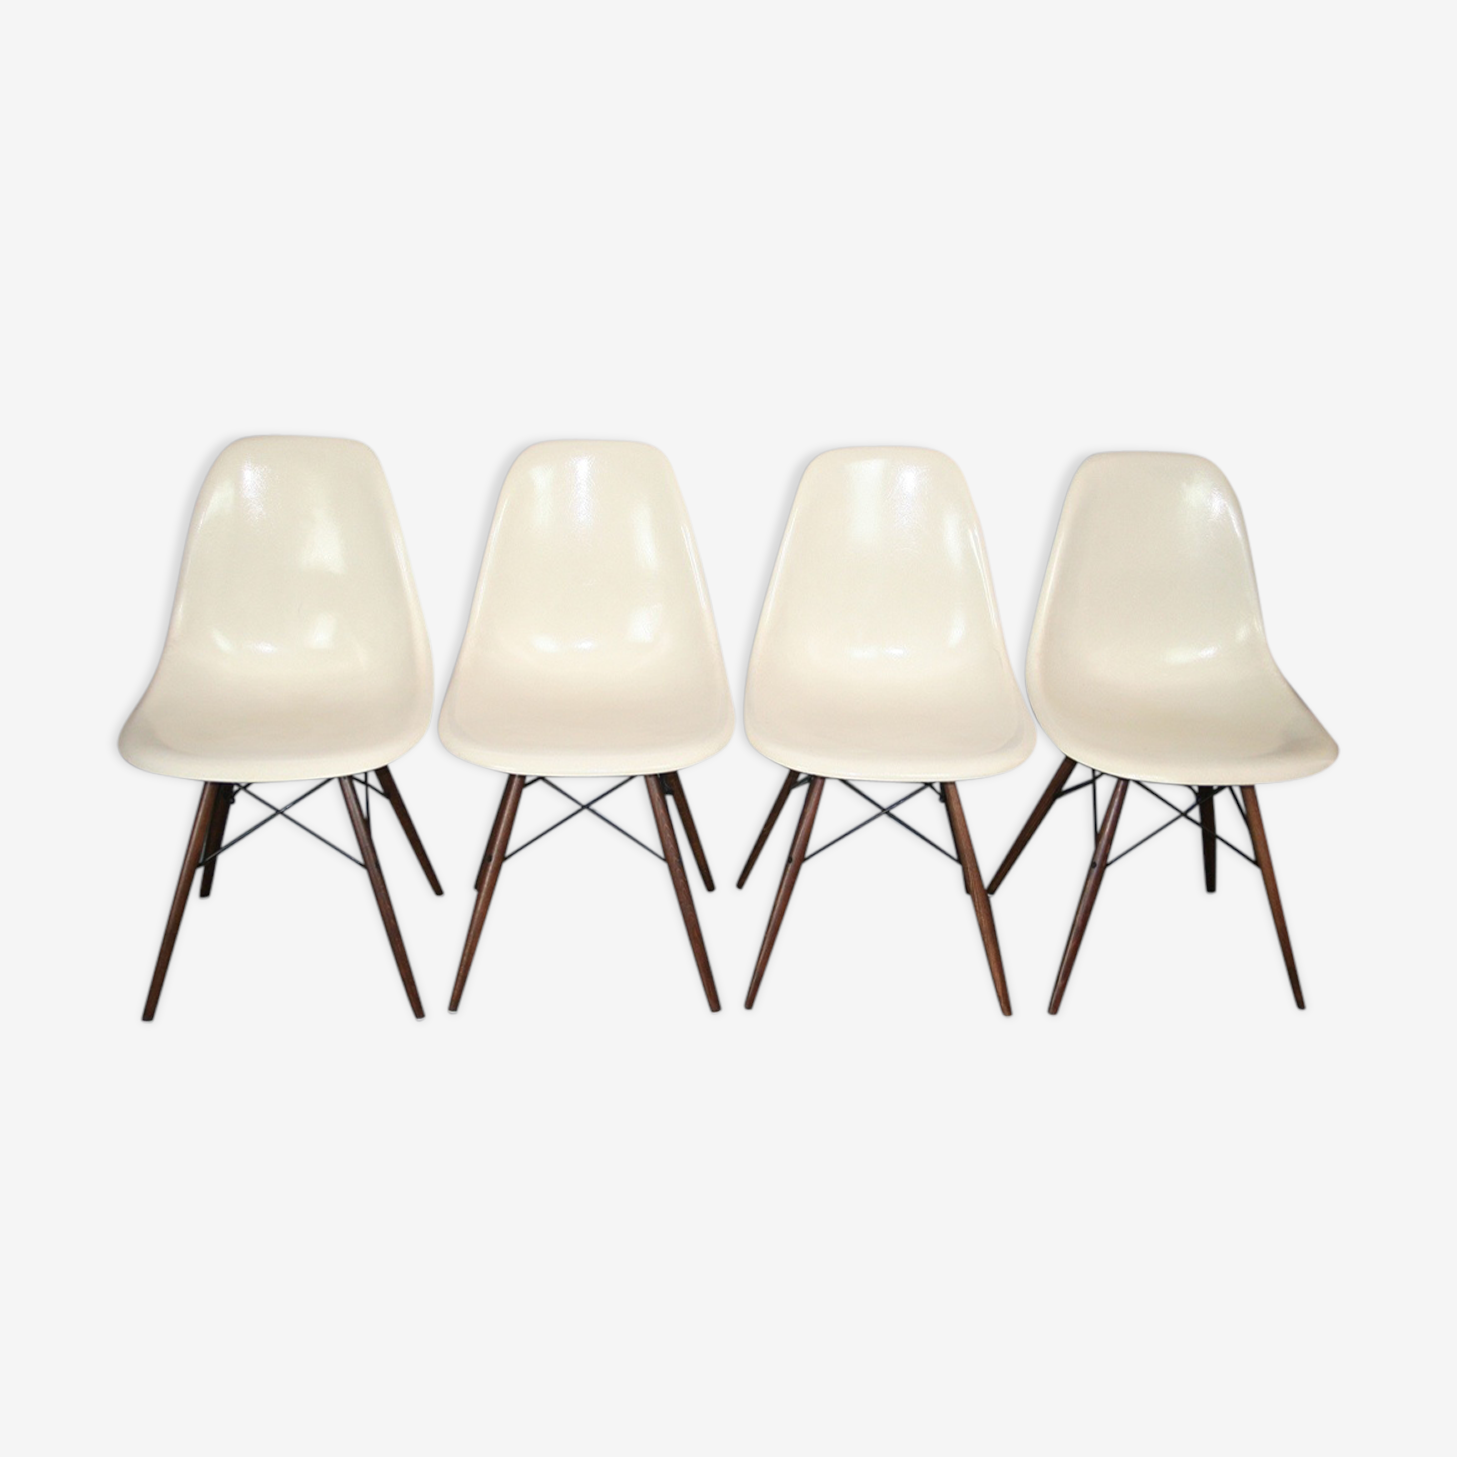 Set of 4 chairs DSW Eames Herman Miller